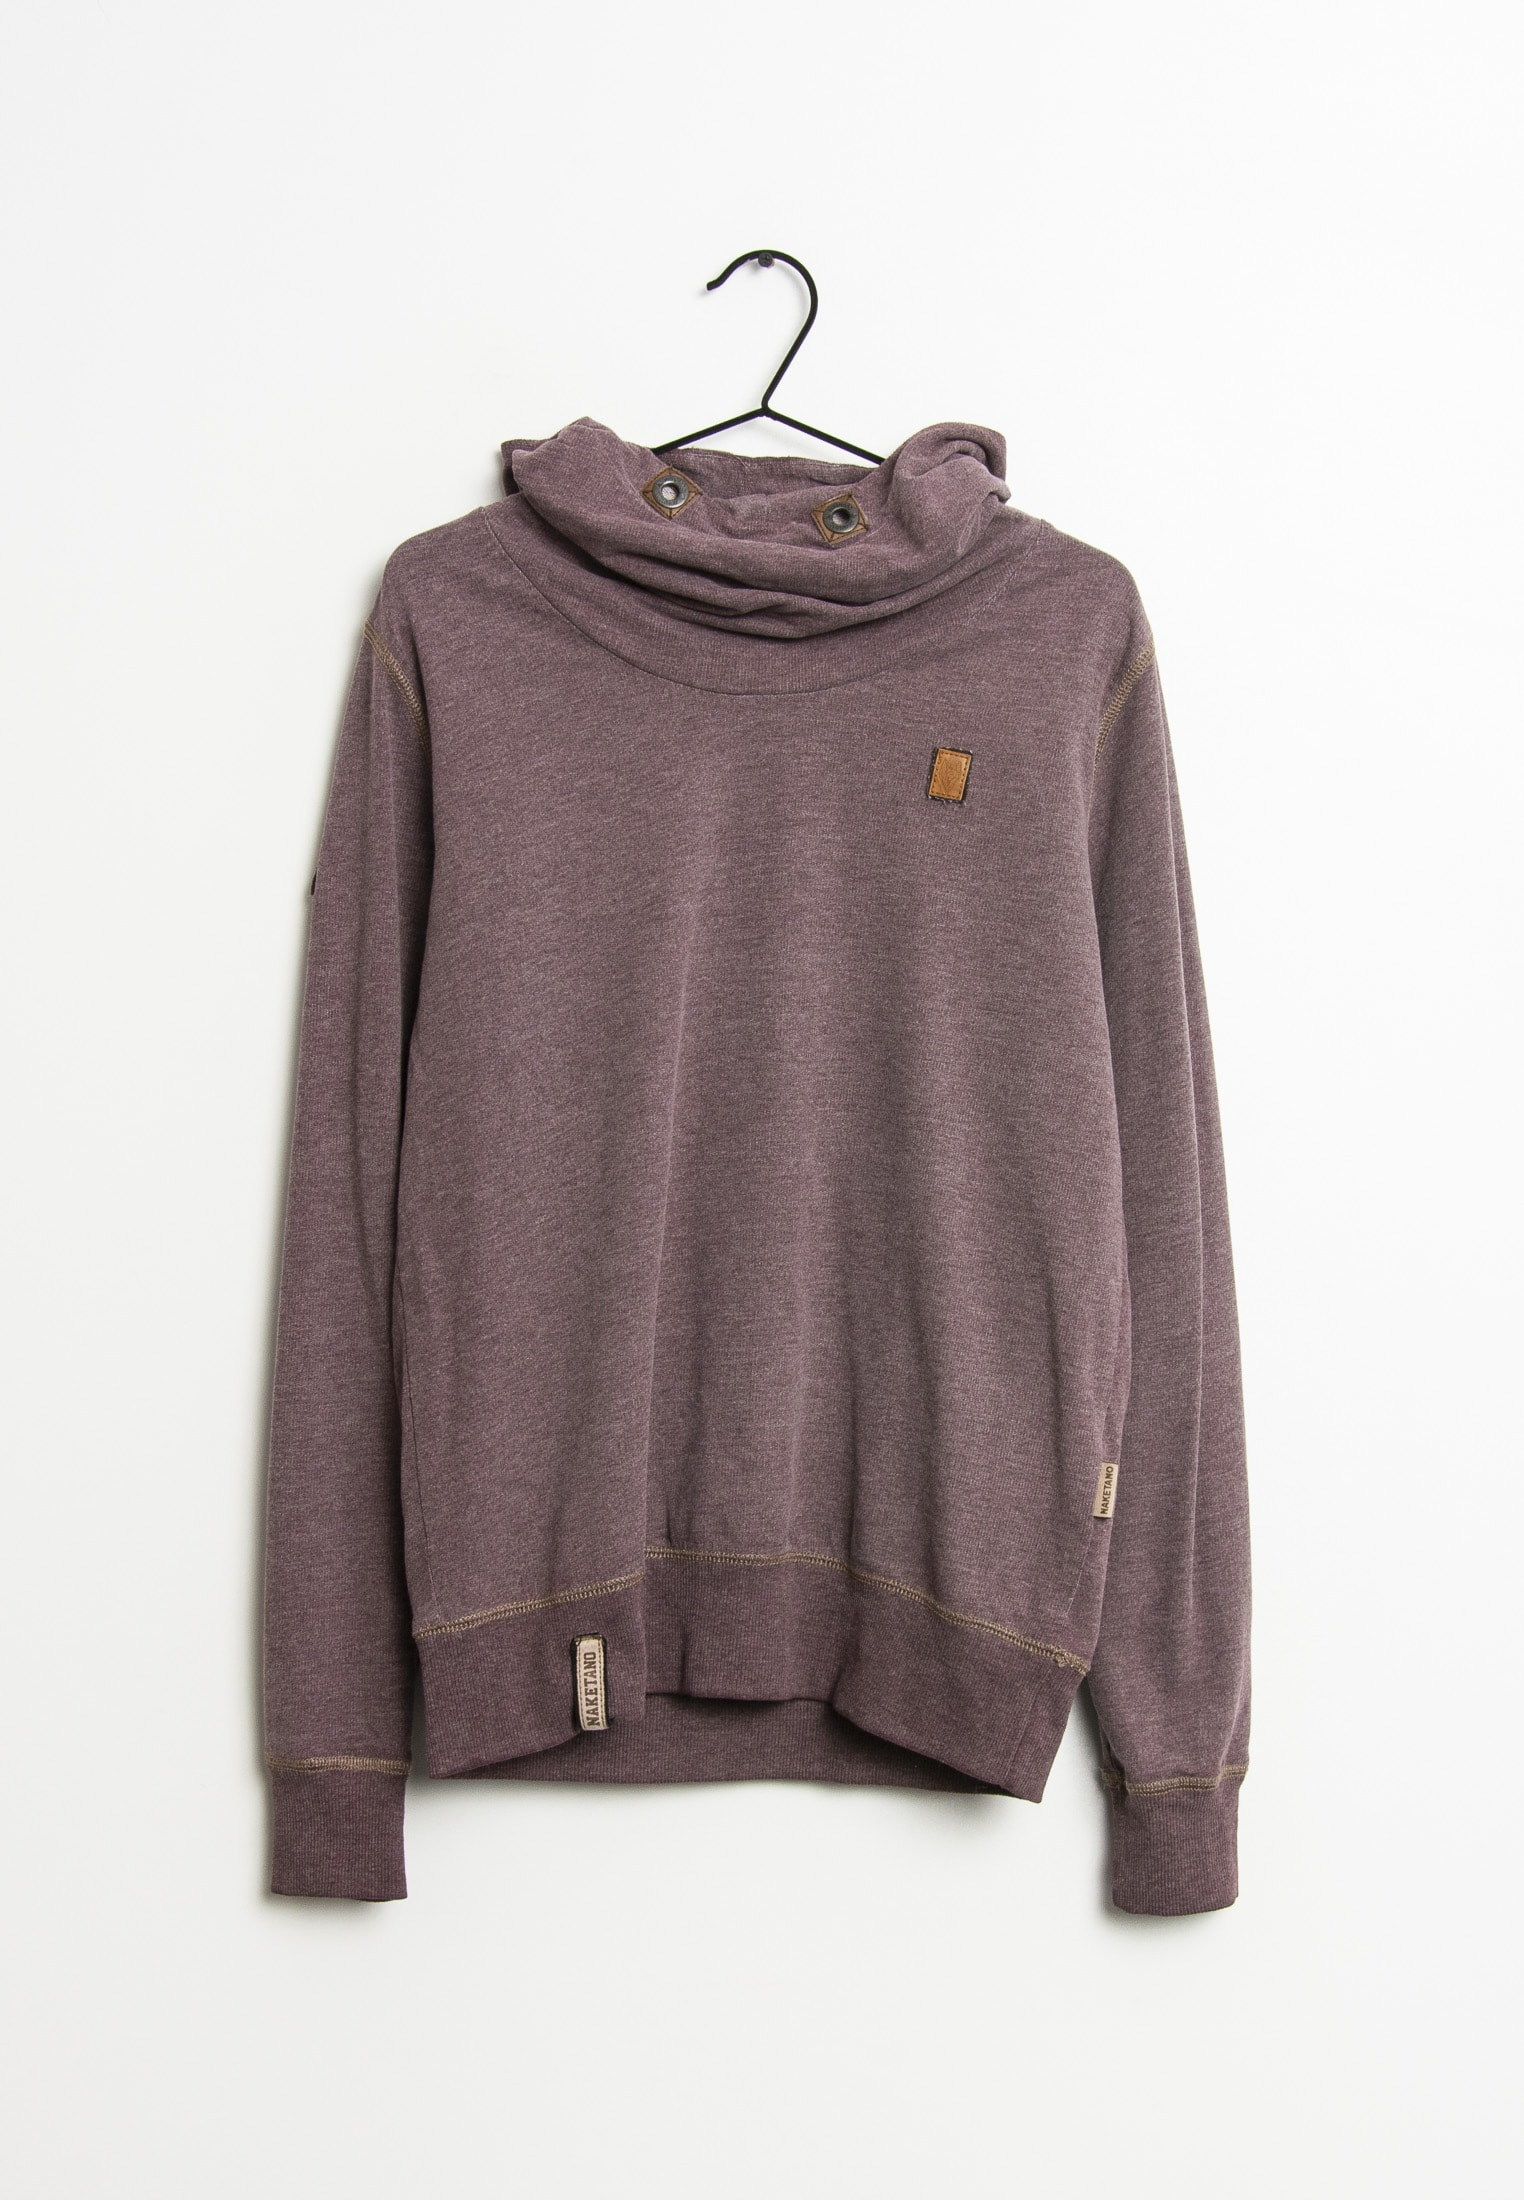 Naketano Sweat / Fleece Lila Gr.M